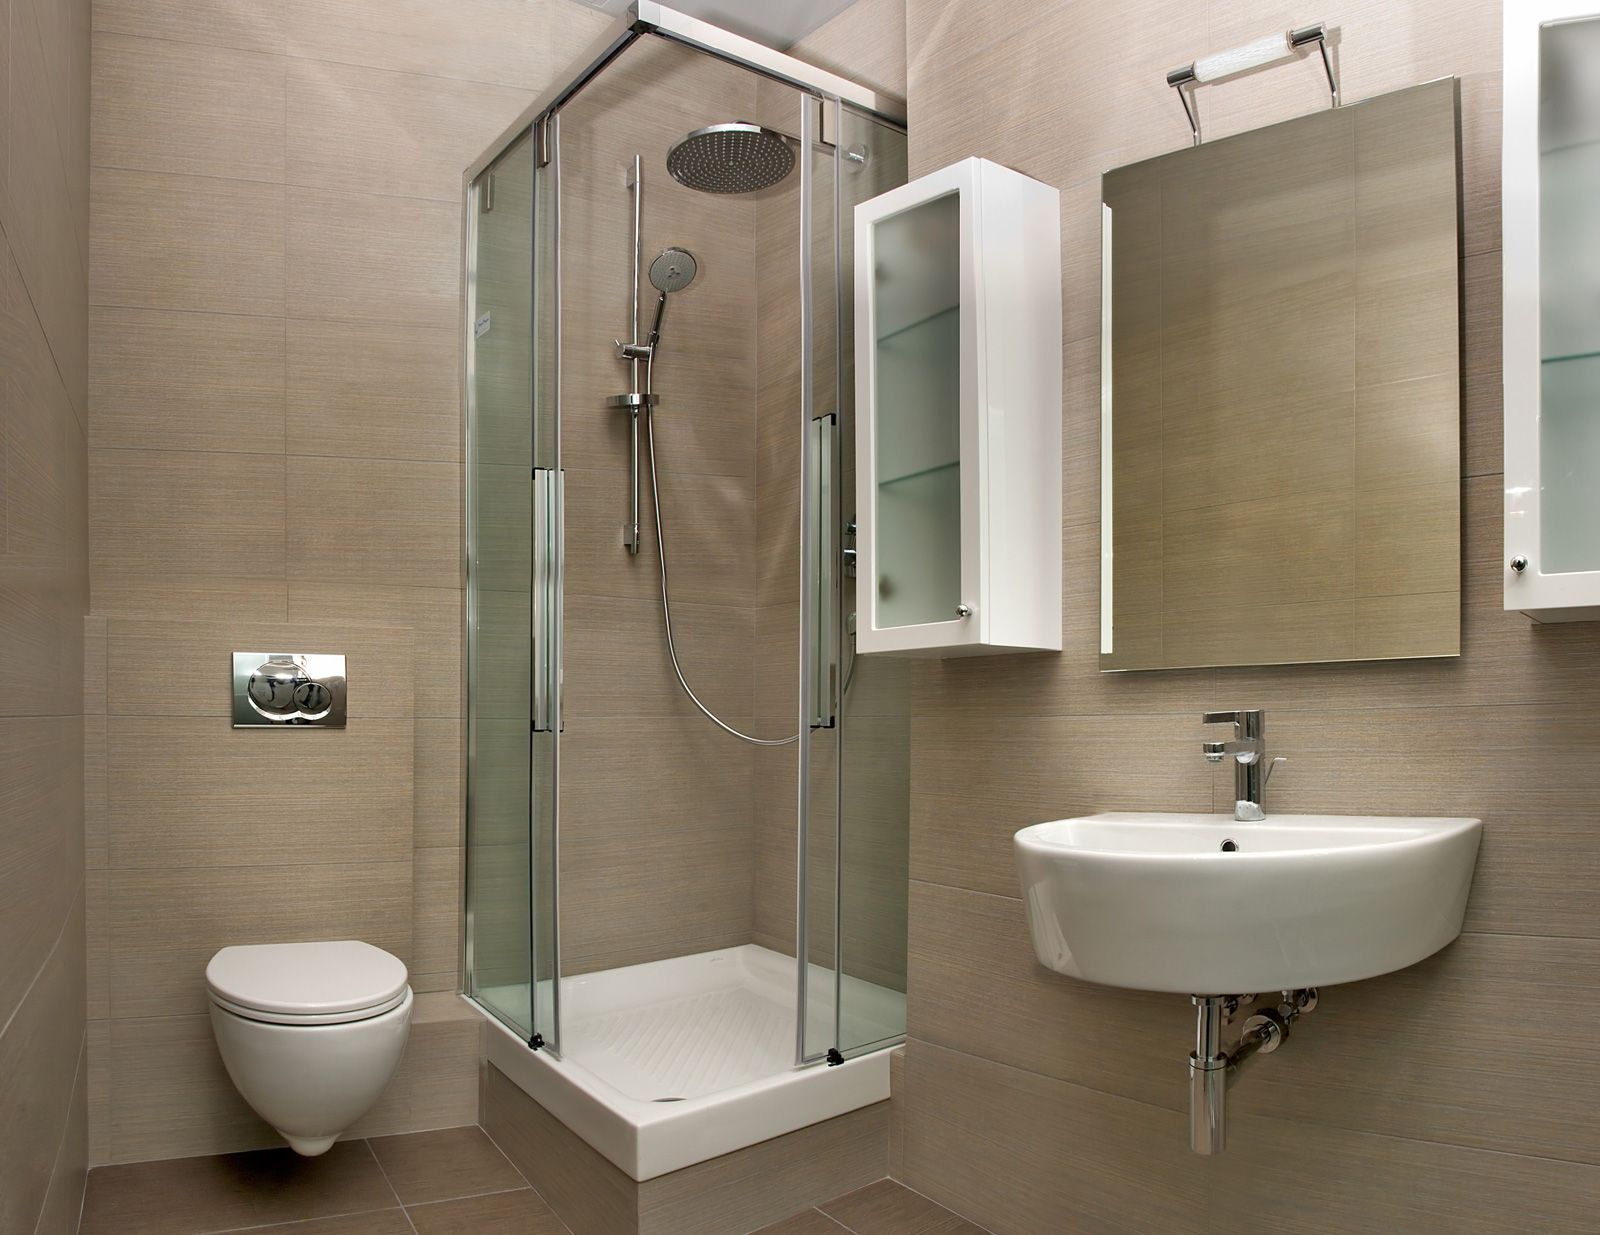 For Small Bathrooms Shower Ideas For Small Bathroom To Inspire You On How To Decorate